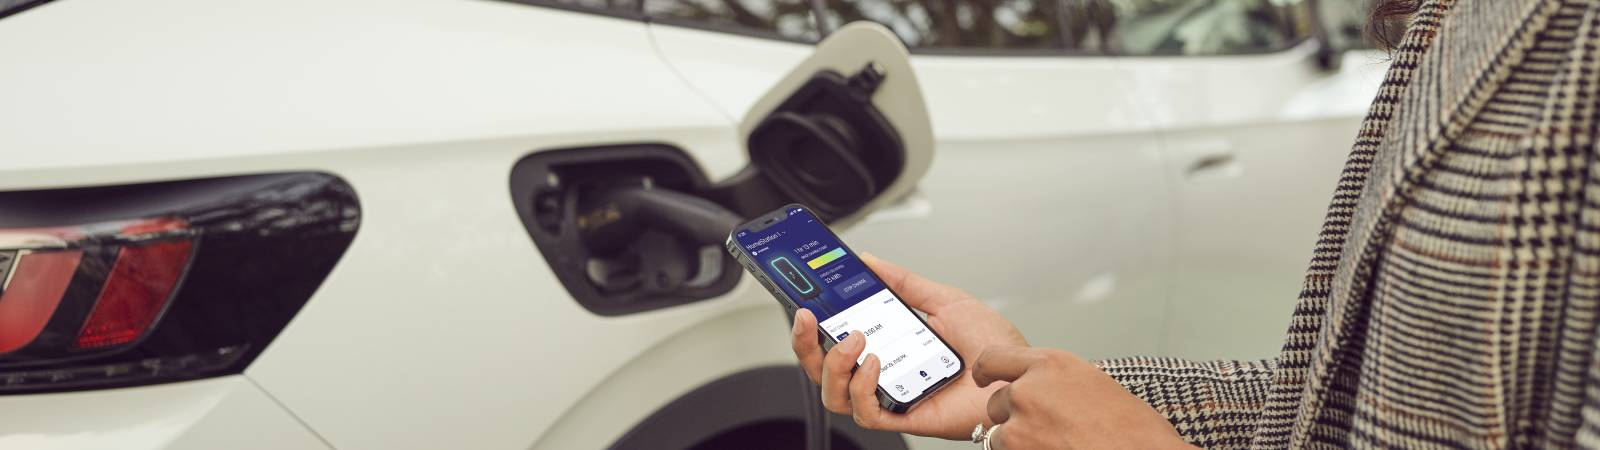 HomeStationᵀᴹ features the Electrify America app for managing your charger remotely at home